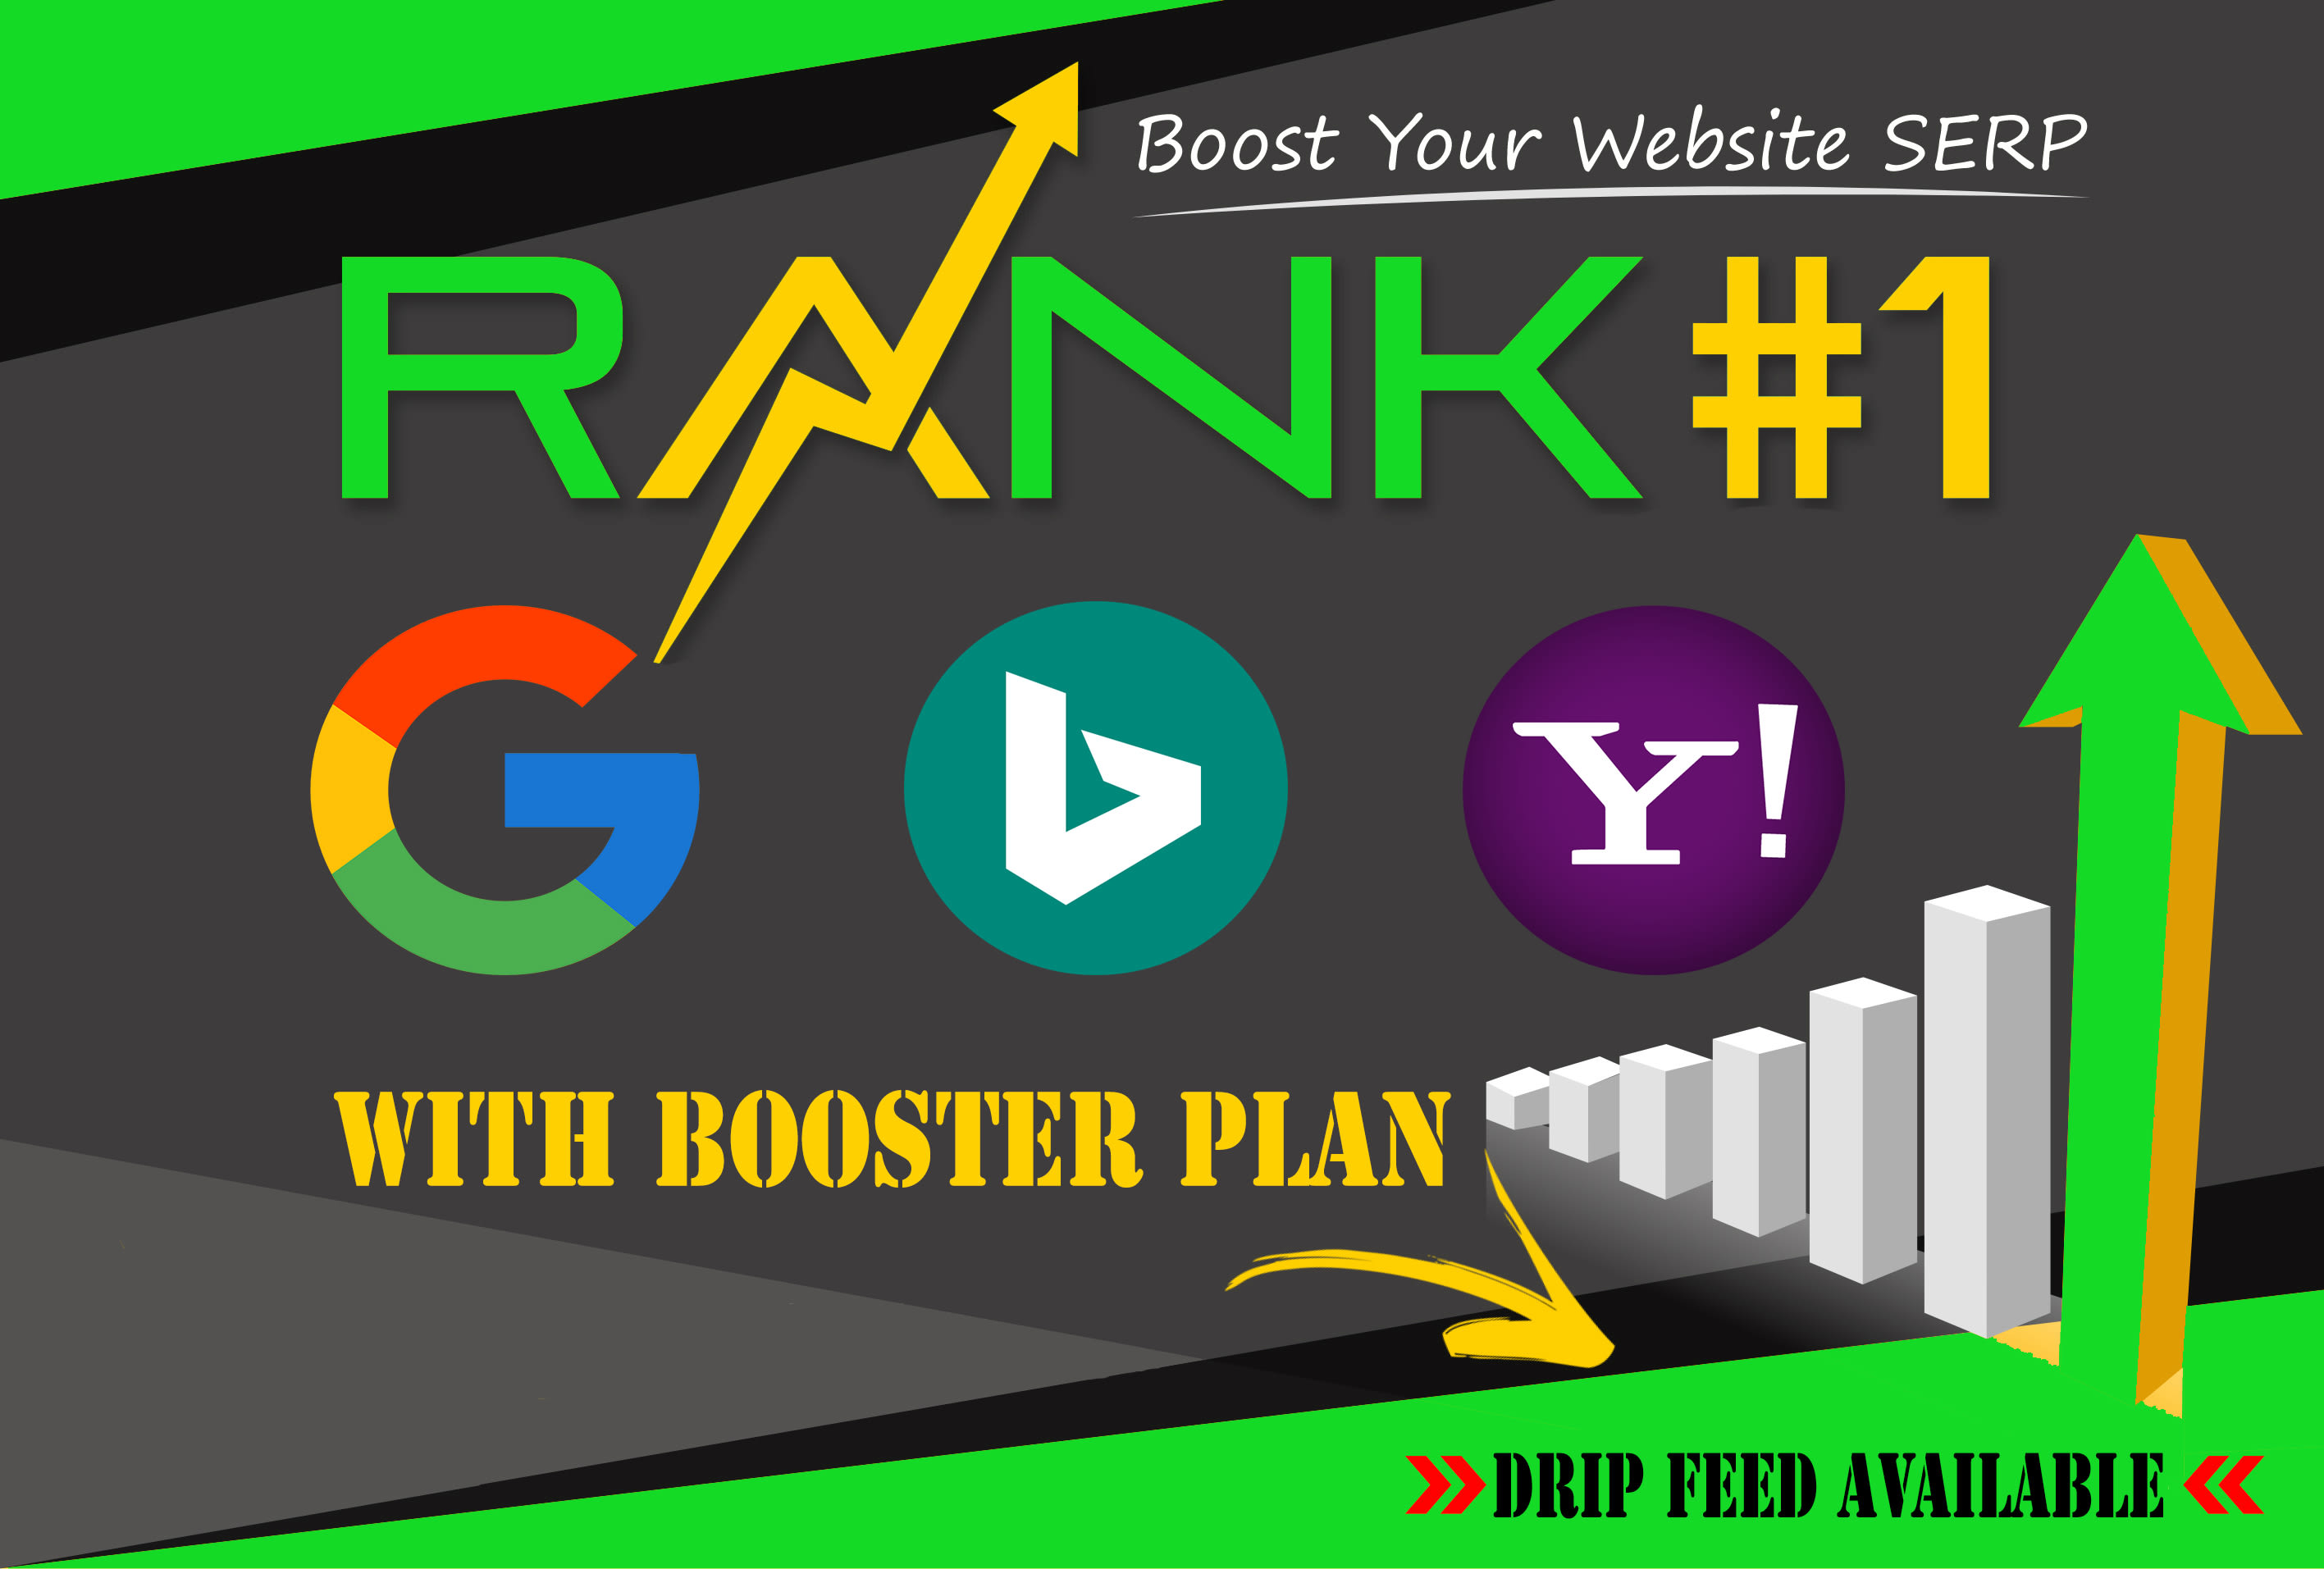 Small SEO Package 2021 - All Manual Super Booster Package - Increase Ranking Of Your Site